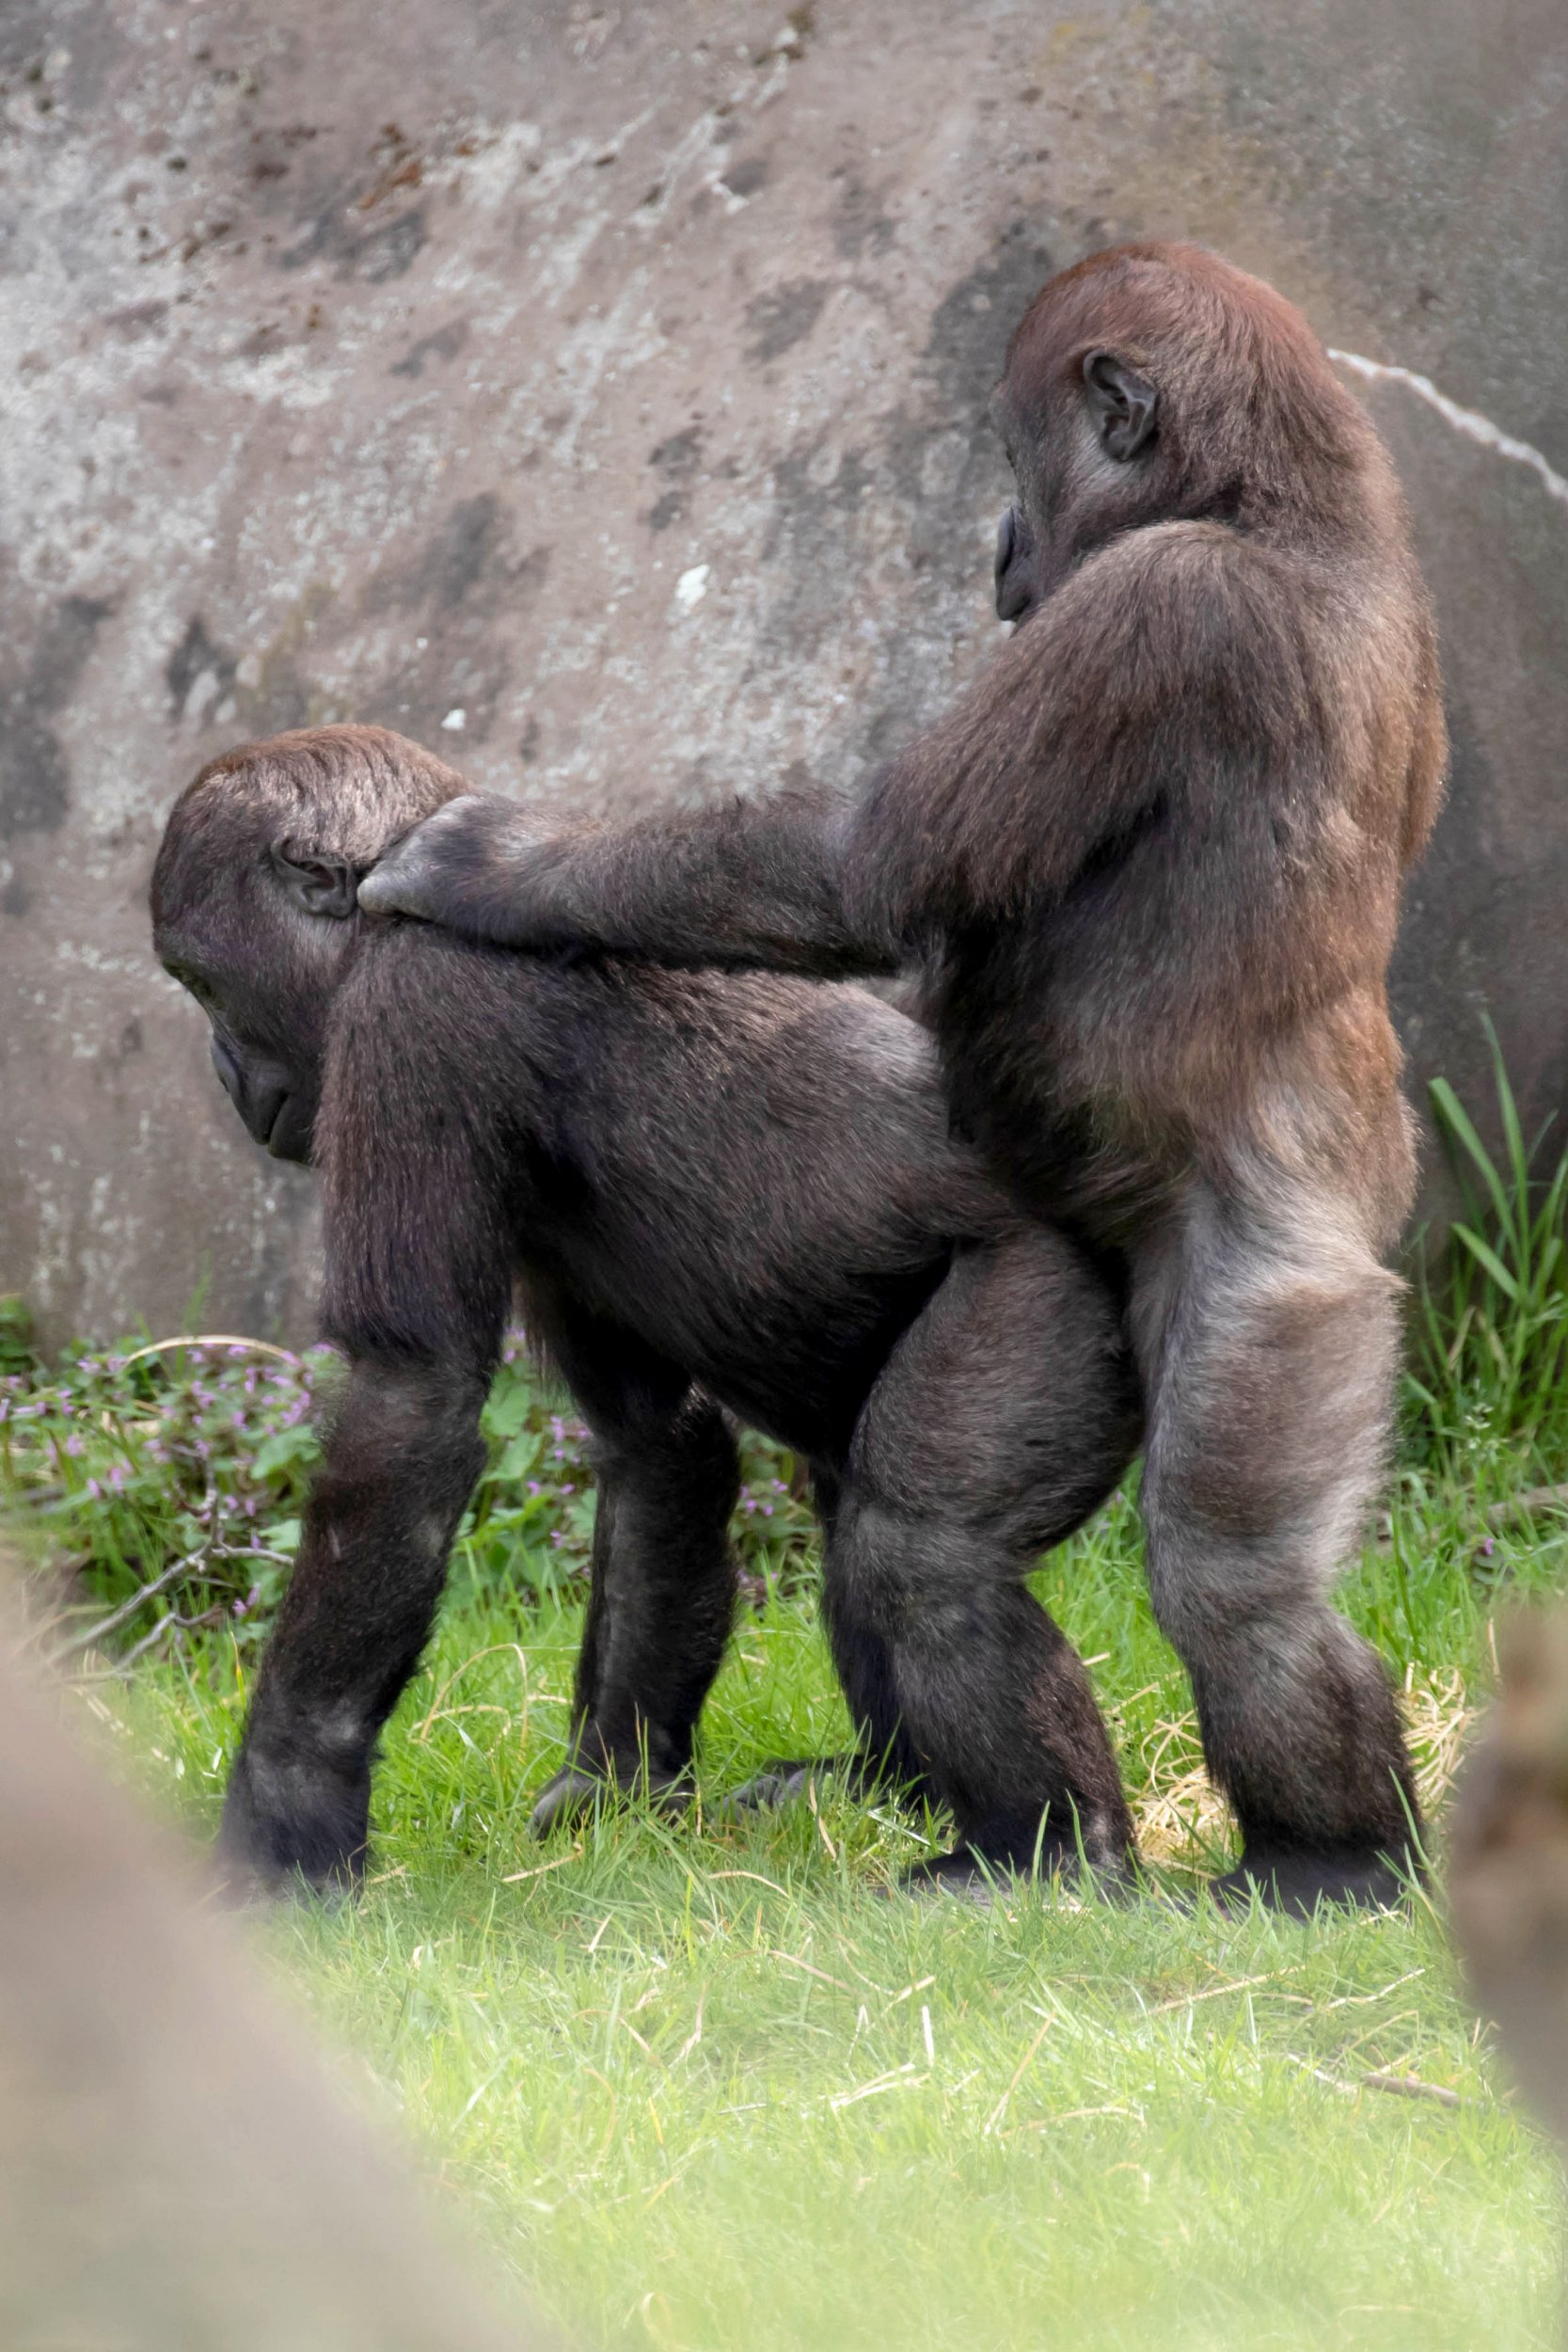 ***MANDATORY BYLINE***PIC FROM Shirley Kroos / Caters News - (PICTURED: Western Lowland Gorillas Aybo, 3.5 years old and Thabo, 3 years old, playing and experimenting with each other at Rotterdam Zoo. PIC TAKEN ON 10/04/18) - A pair of mischievous gorillas were caught sharing a sexual embrace by an unexpected photographer. Shirley Kroos, 30, was visiting Rotterdam Zoo in the Netherlands when she caught a pair of young gorillas up to no good. The male gorillas who were caught in the act are Aybo, three-and-a-half, and Thabo, three, and are residents at the zoo.SEE CATERS COPY